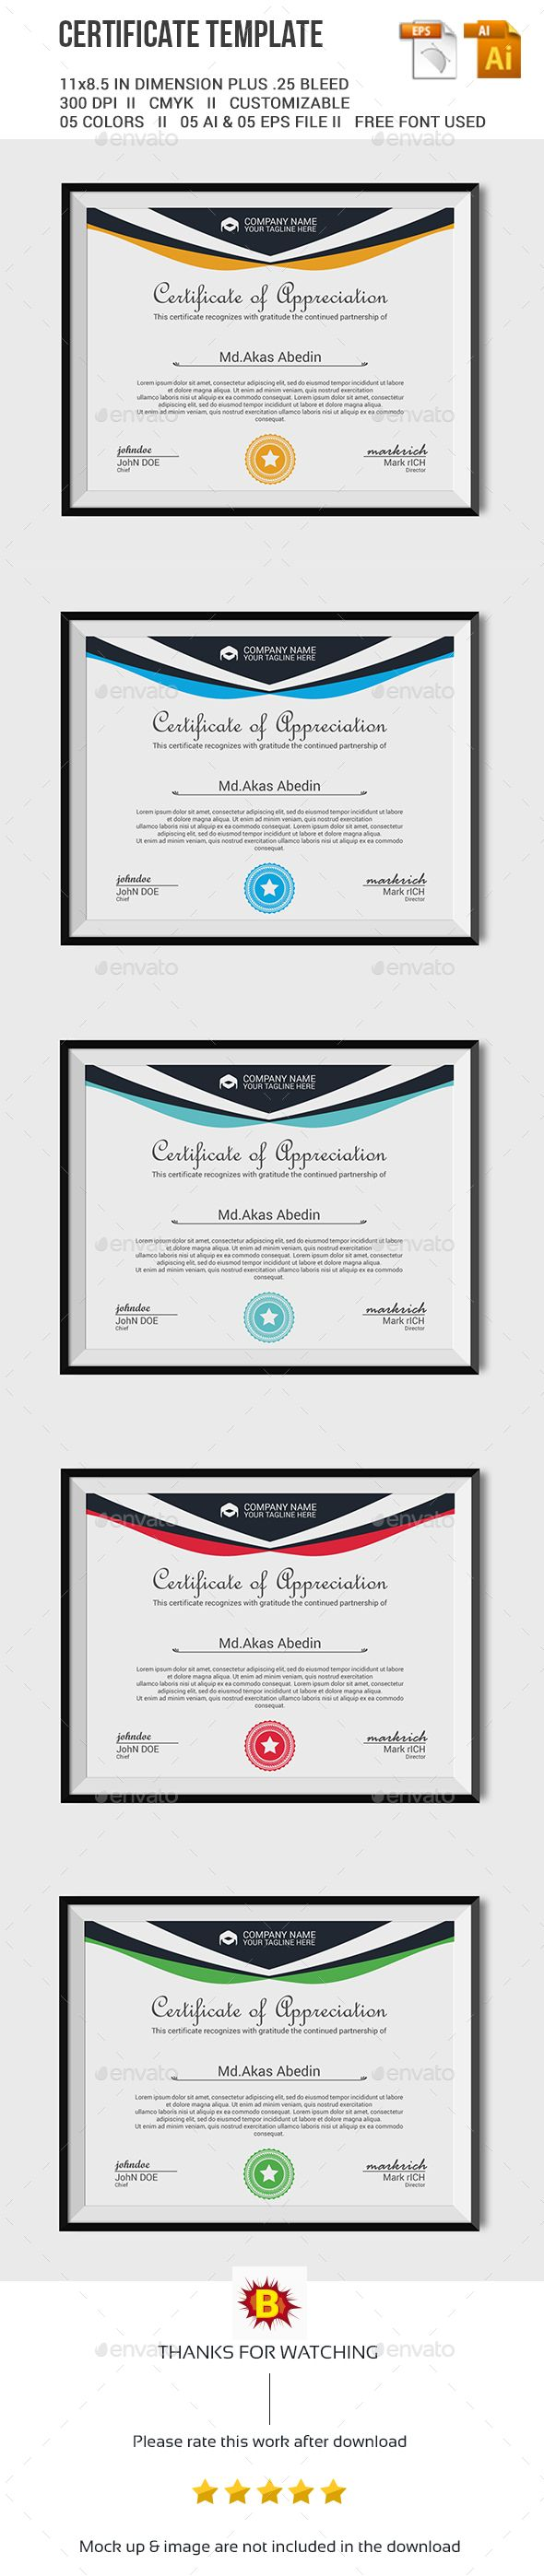 Certificate Template Vector EPS, AI. Download here: http://graphicriver.net/item/certificate-template/13539951?ref=ksioks